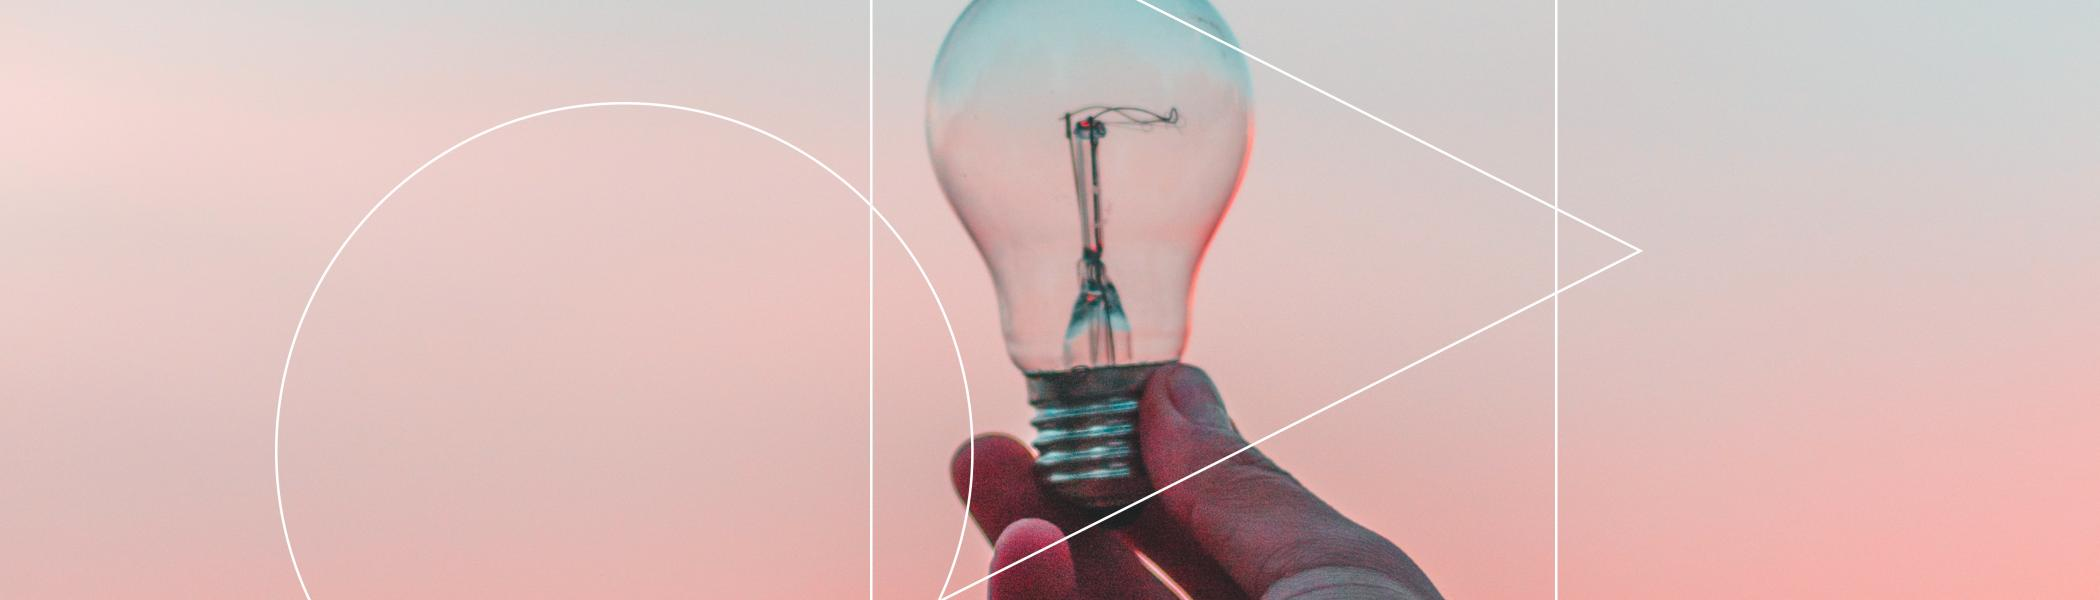 A light bulb being held up